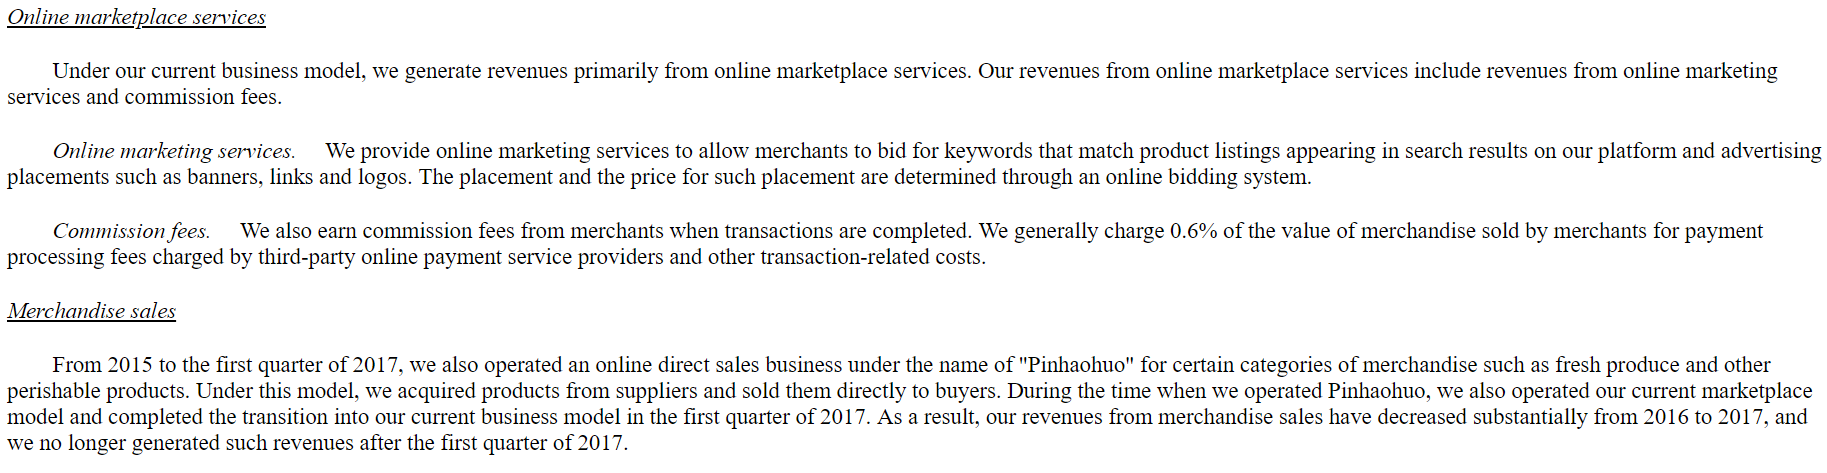 Pinduoduo Pre-IPO Review - Exposure to A New Breed of E